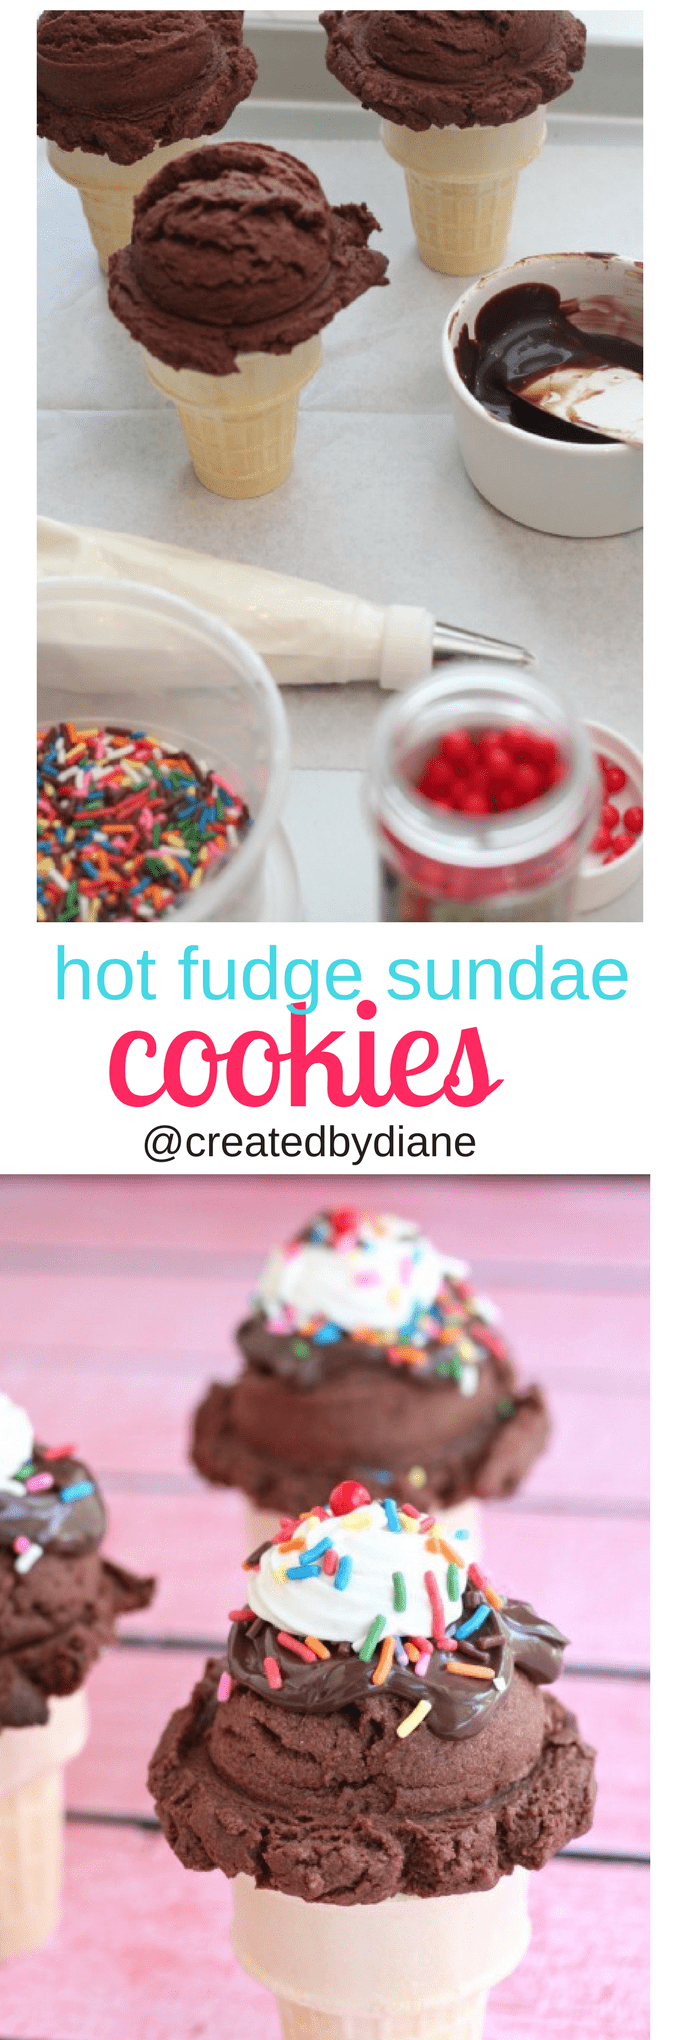 hot fudge sundae cookies on top of ice cream cones @createdbydiane